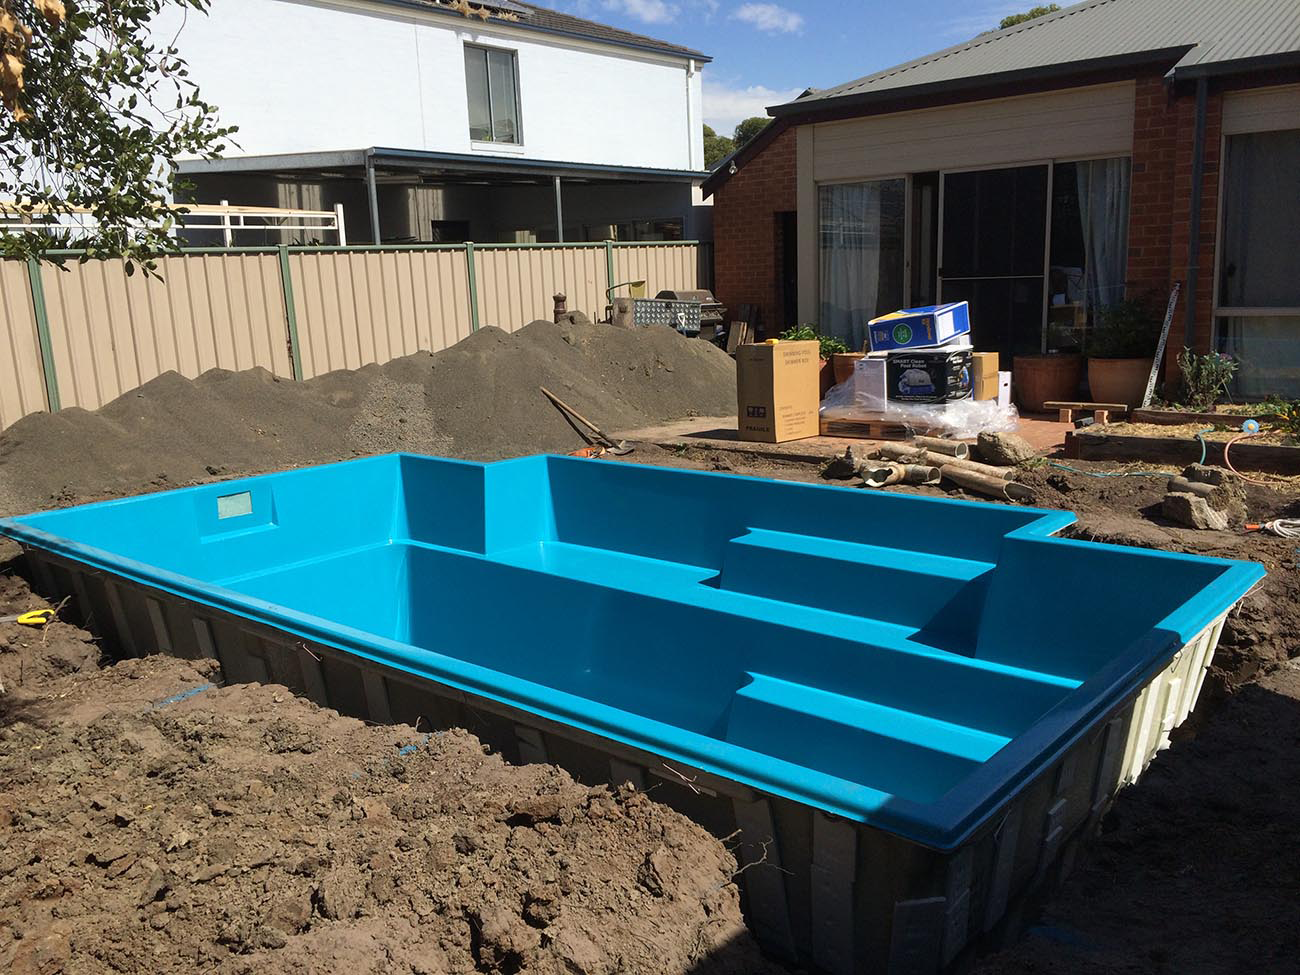 small living in style u2013 landscaping and a lap pool lisa elliott